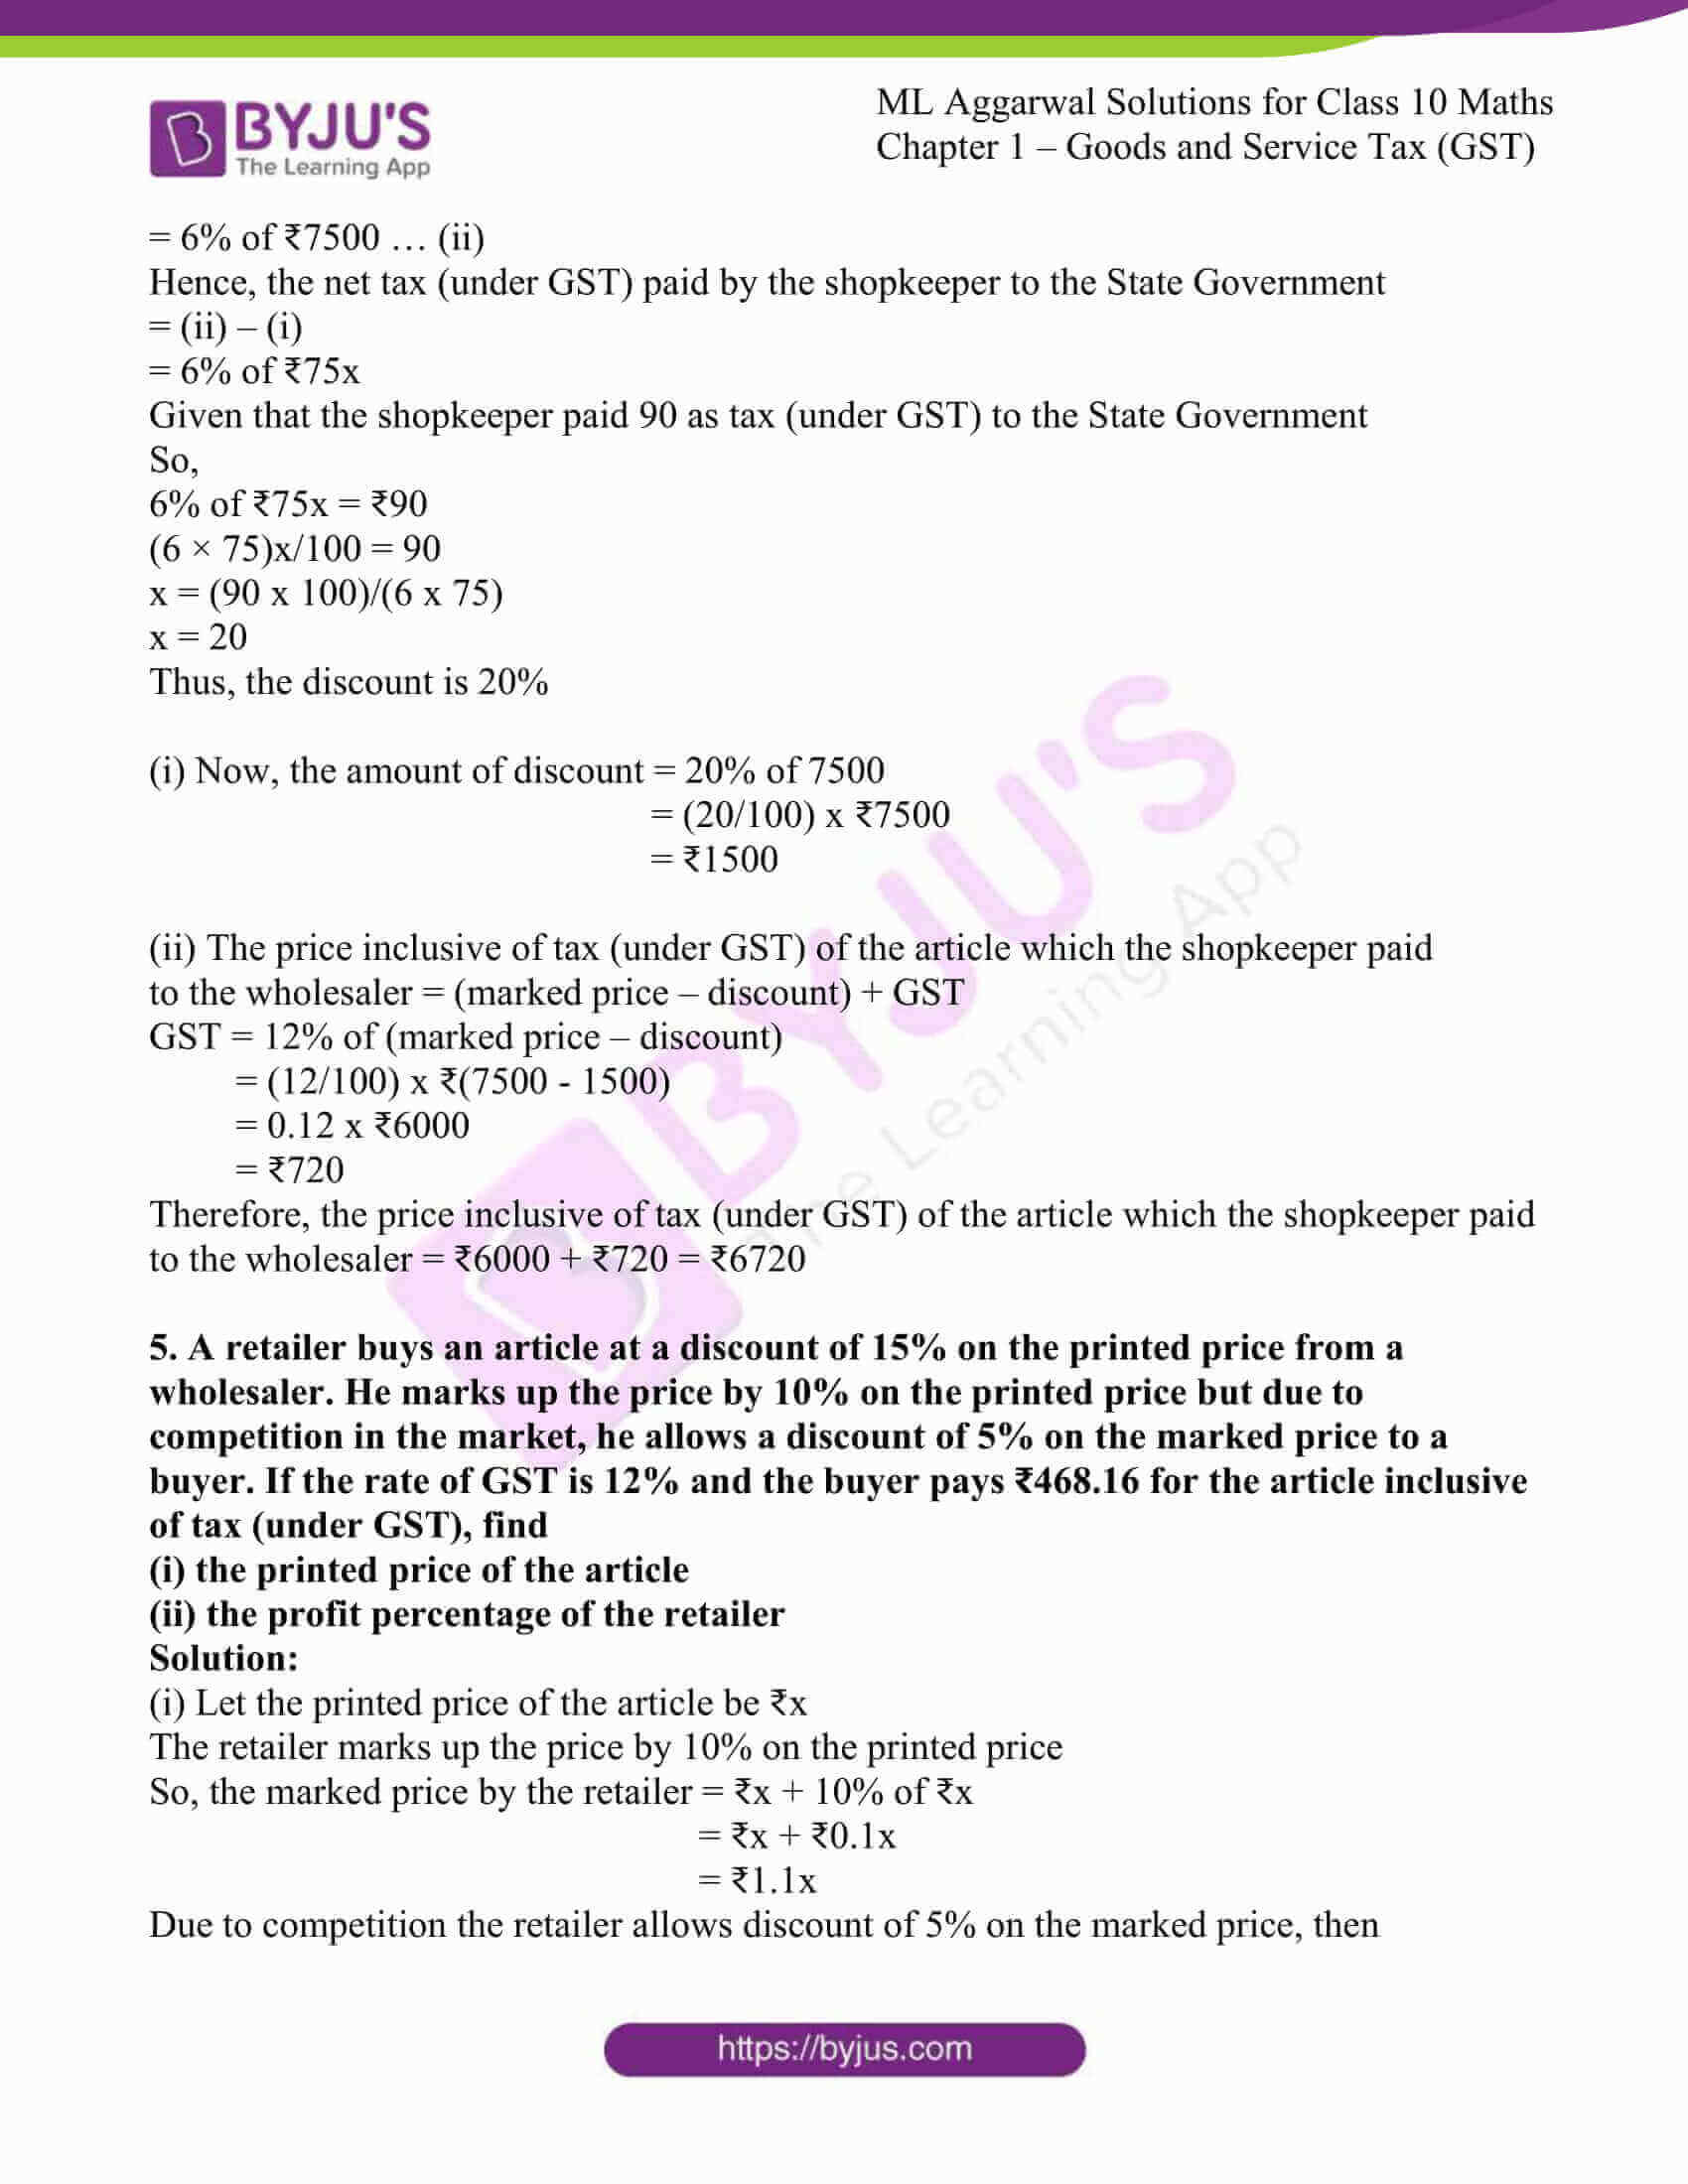 ml aggarwal solutions class 10 maths chapter 1 24